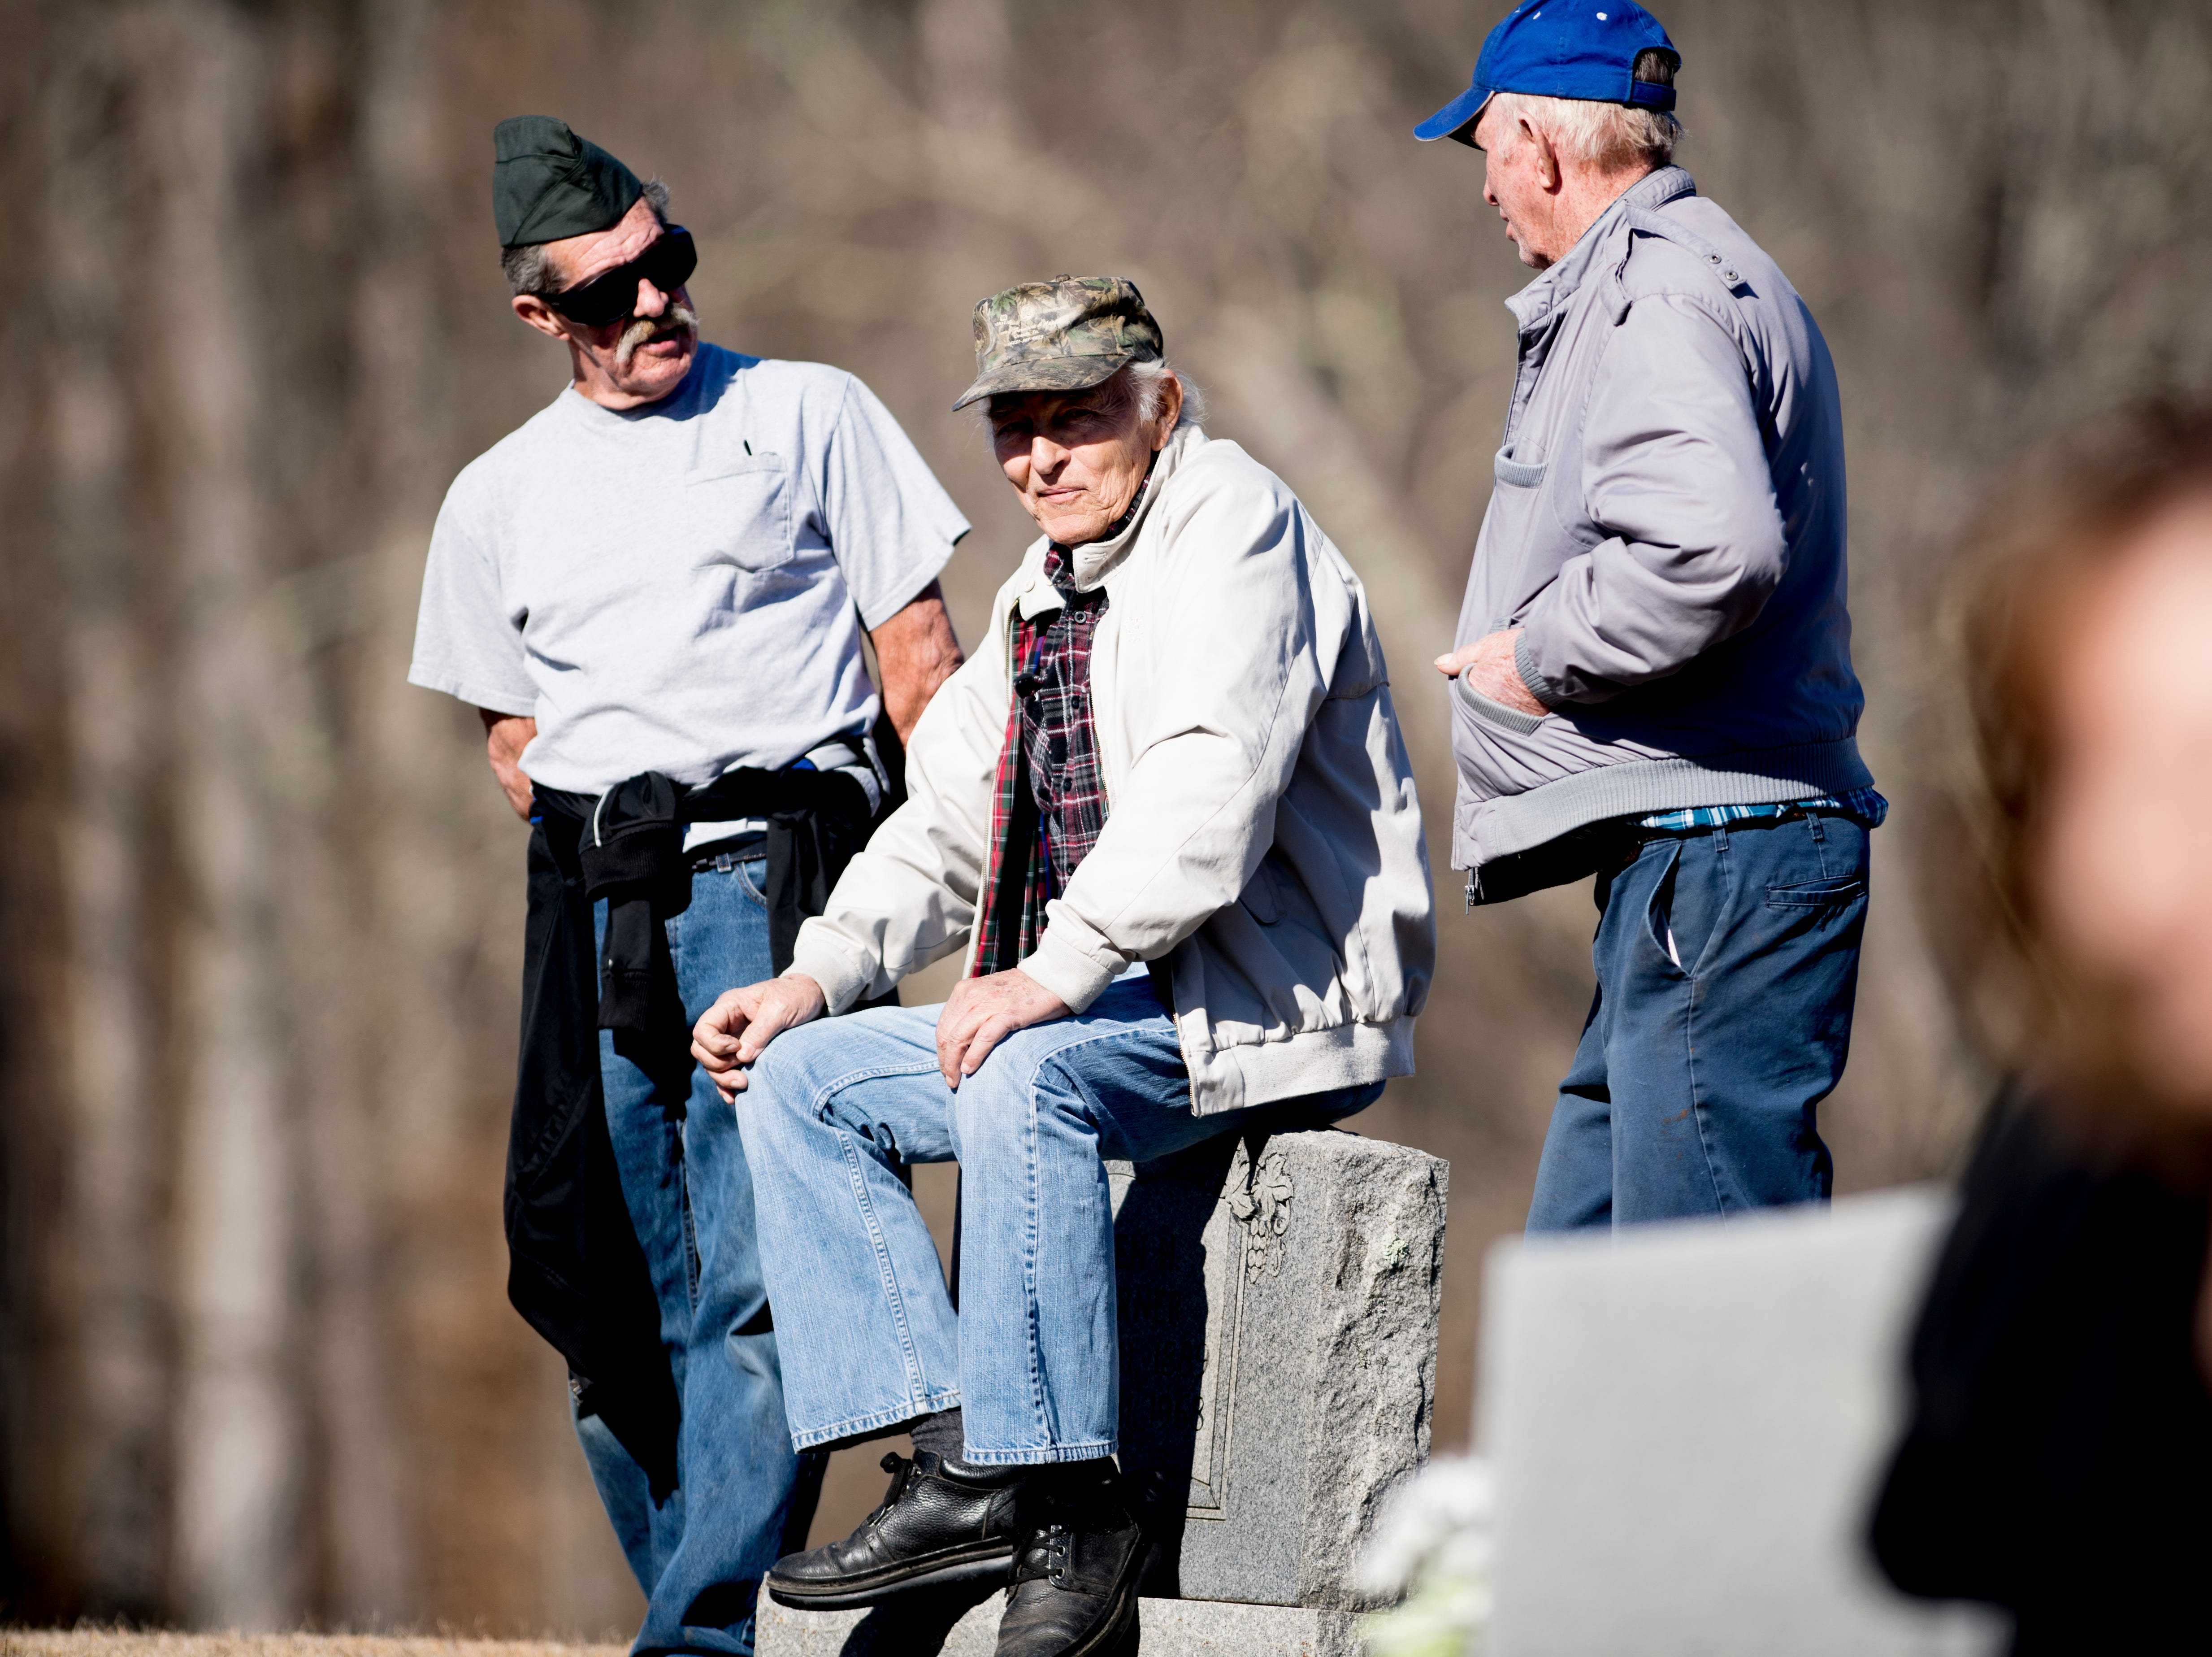 Veterans mingle before a graveside service for Rosemary Mariner, the US Navy's first female fighter pilot, at New Loyston Cemetery in Maynardville, Tennessee on Saturday, February 2, 2019. Mariner died January 24th of cancer.